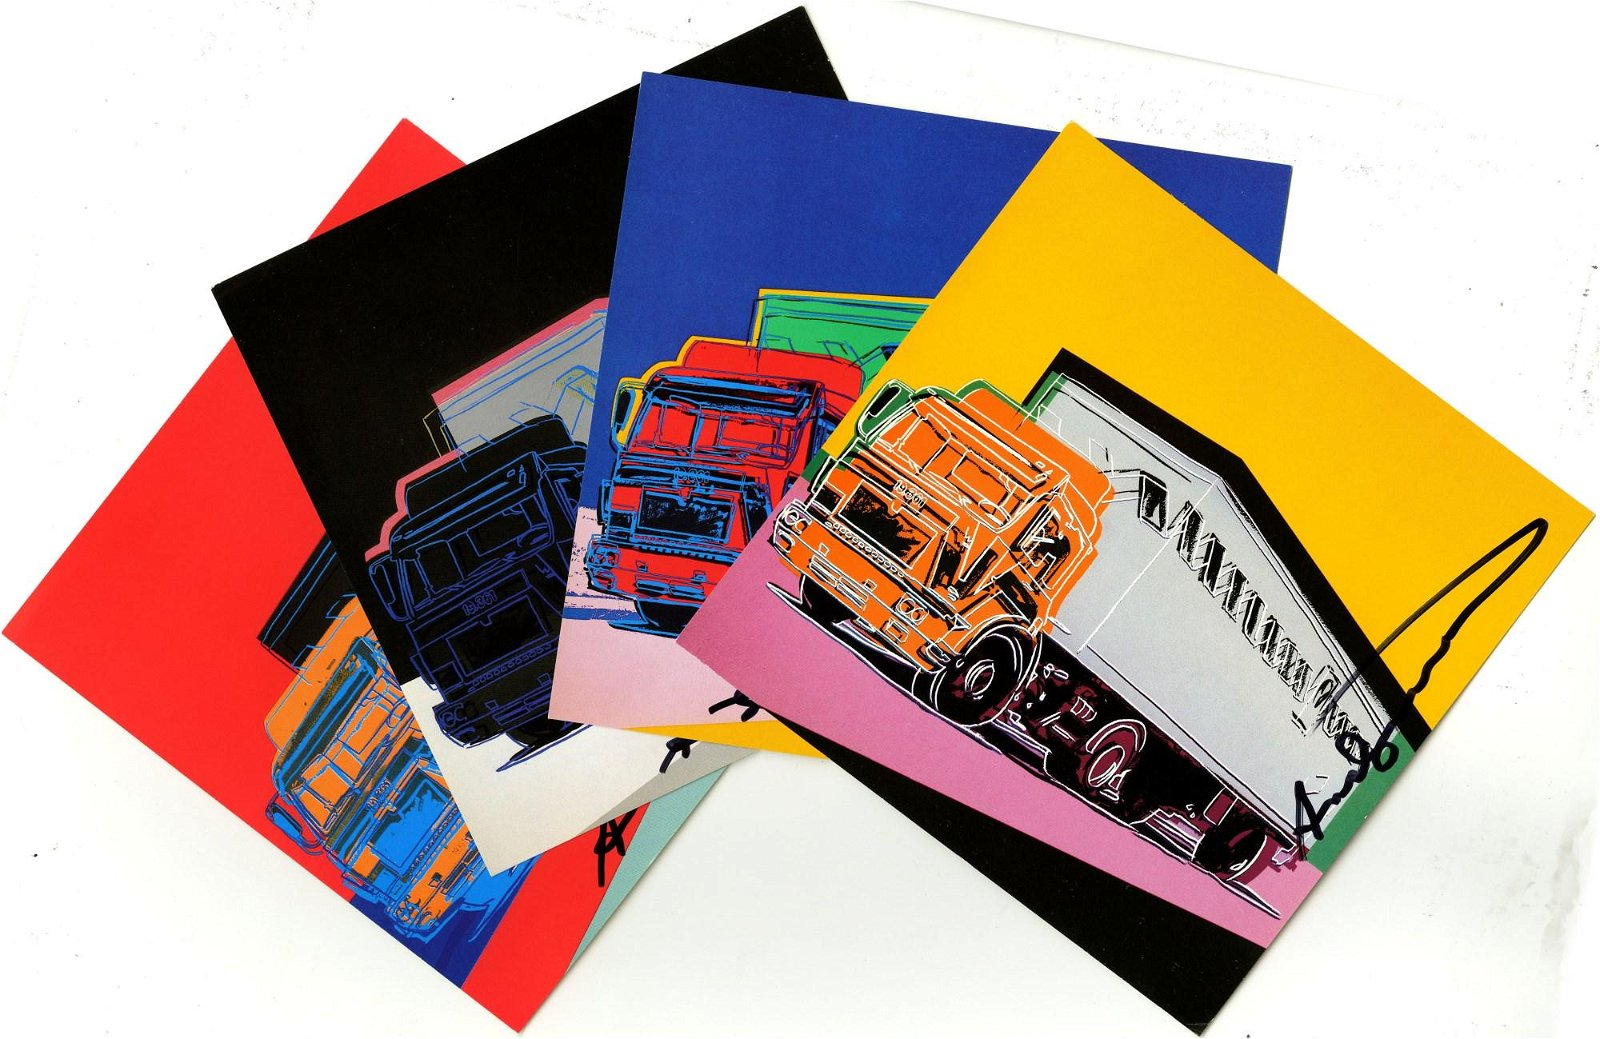 ANDY WARHOL - Trucks Suite - Color offset lithographs